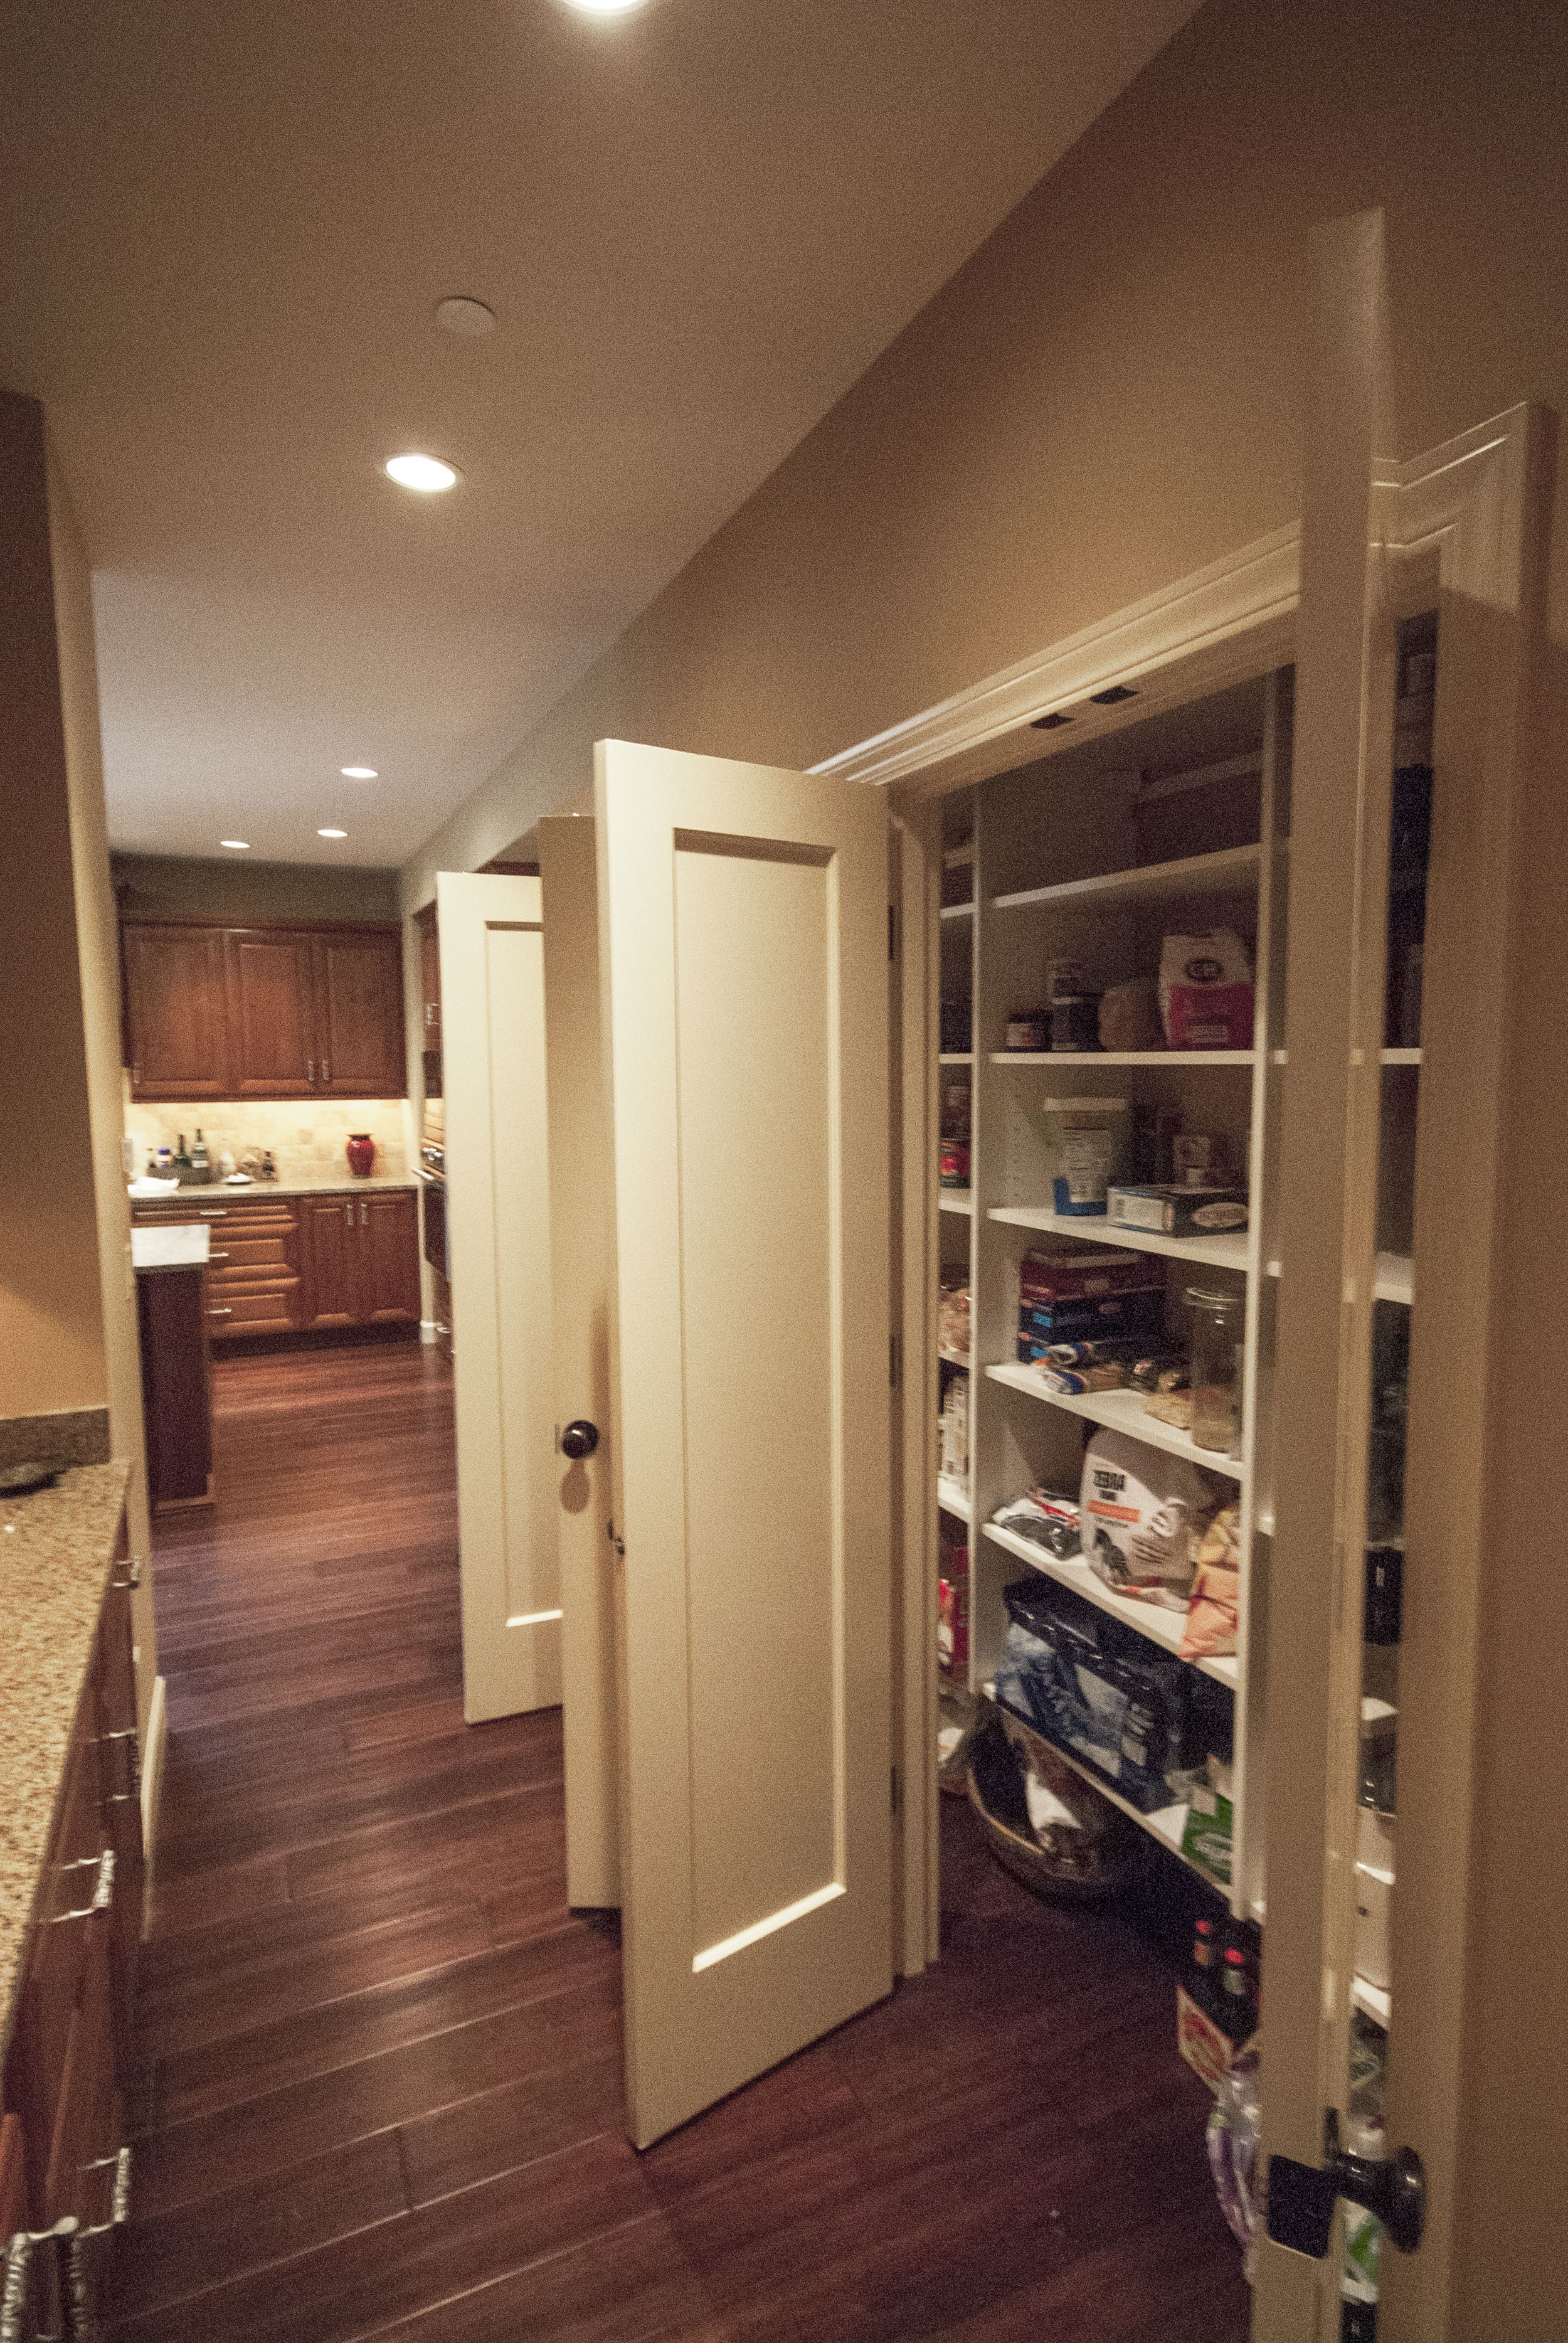 Opposite is a huge pantry.